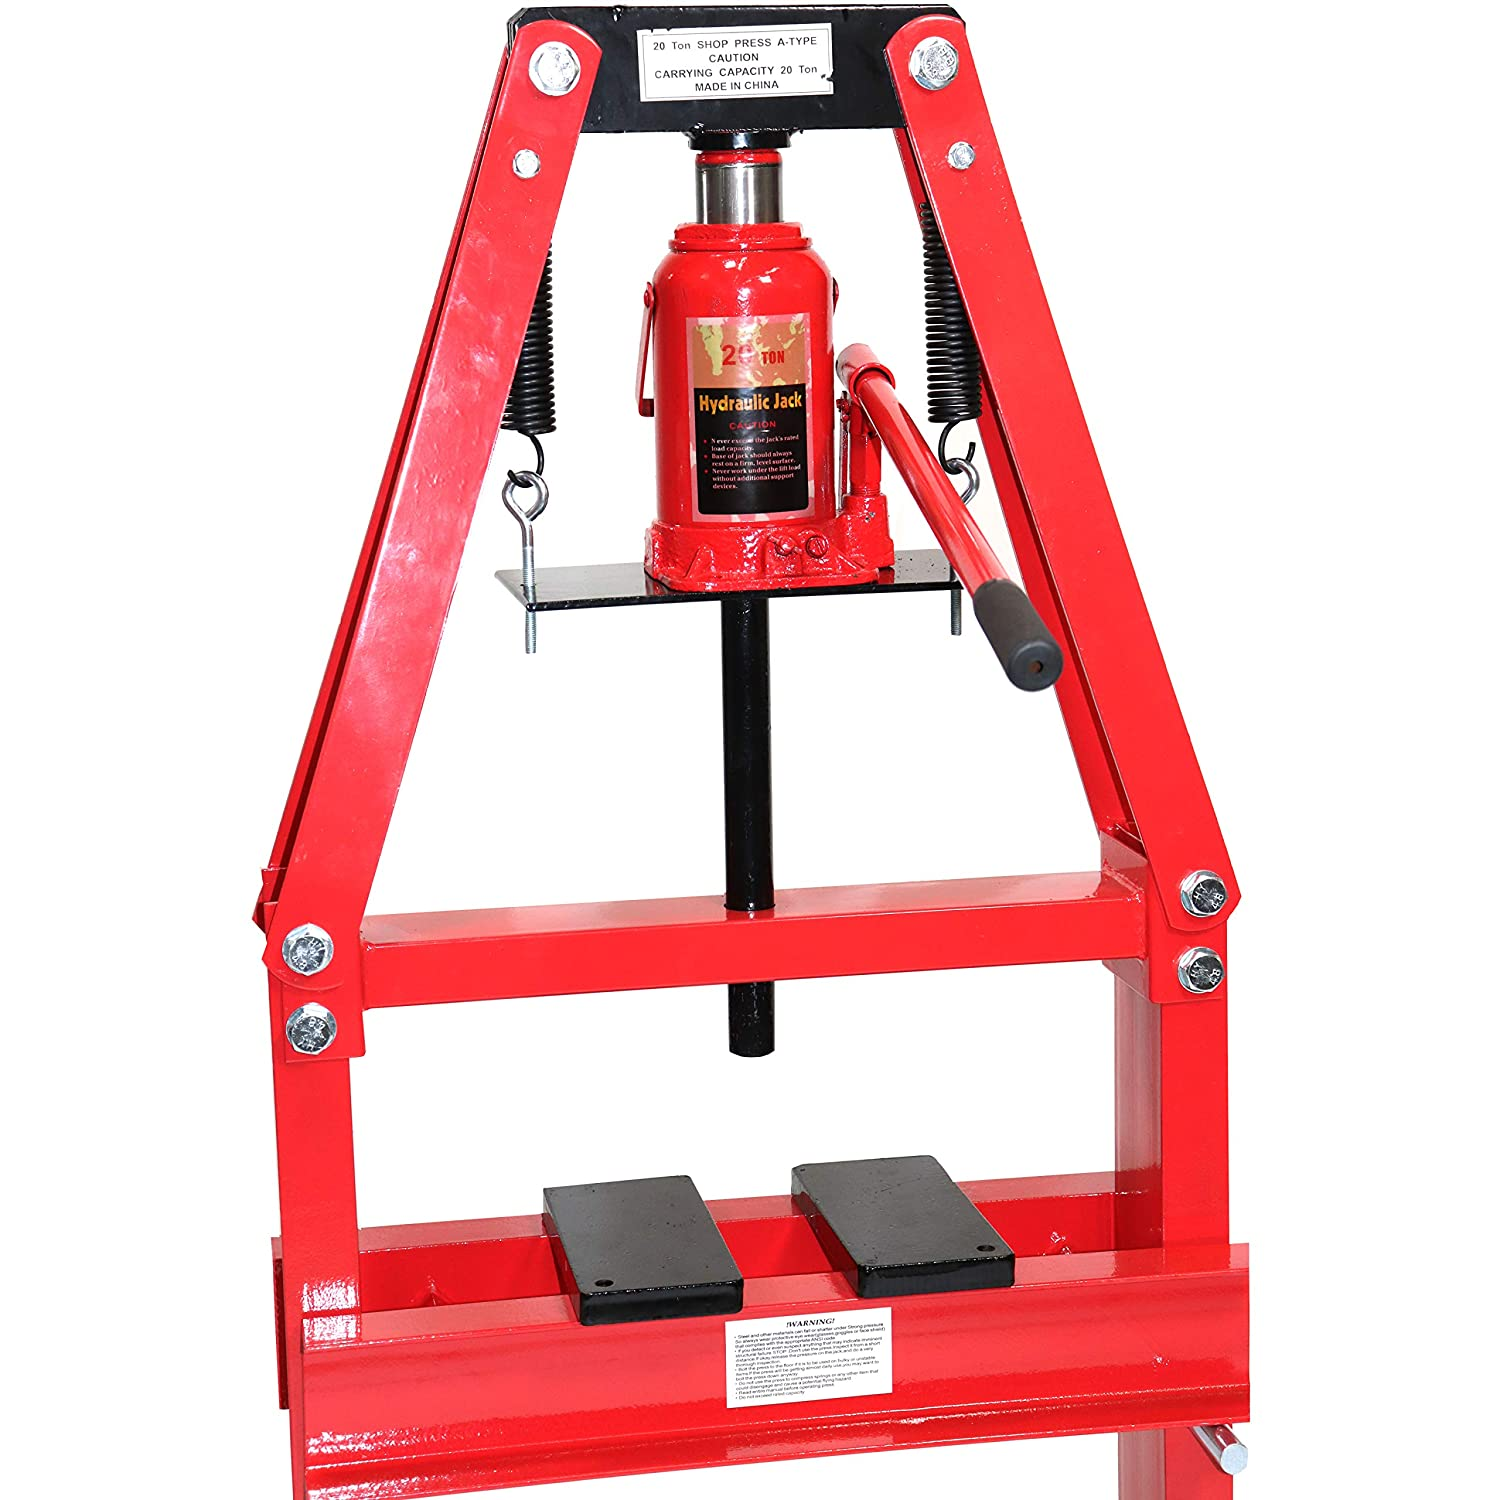 Dragway Tools 12 Ton A-Frame Benchtop Hydraulic Shop Press with Press Plates Install Remove Gears Press Bearings Bend Metal